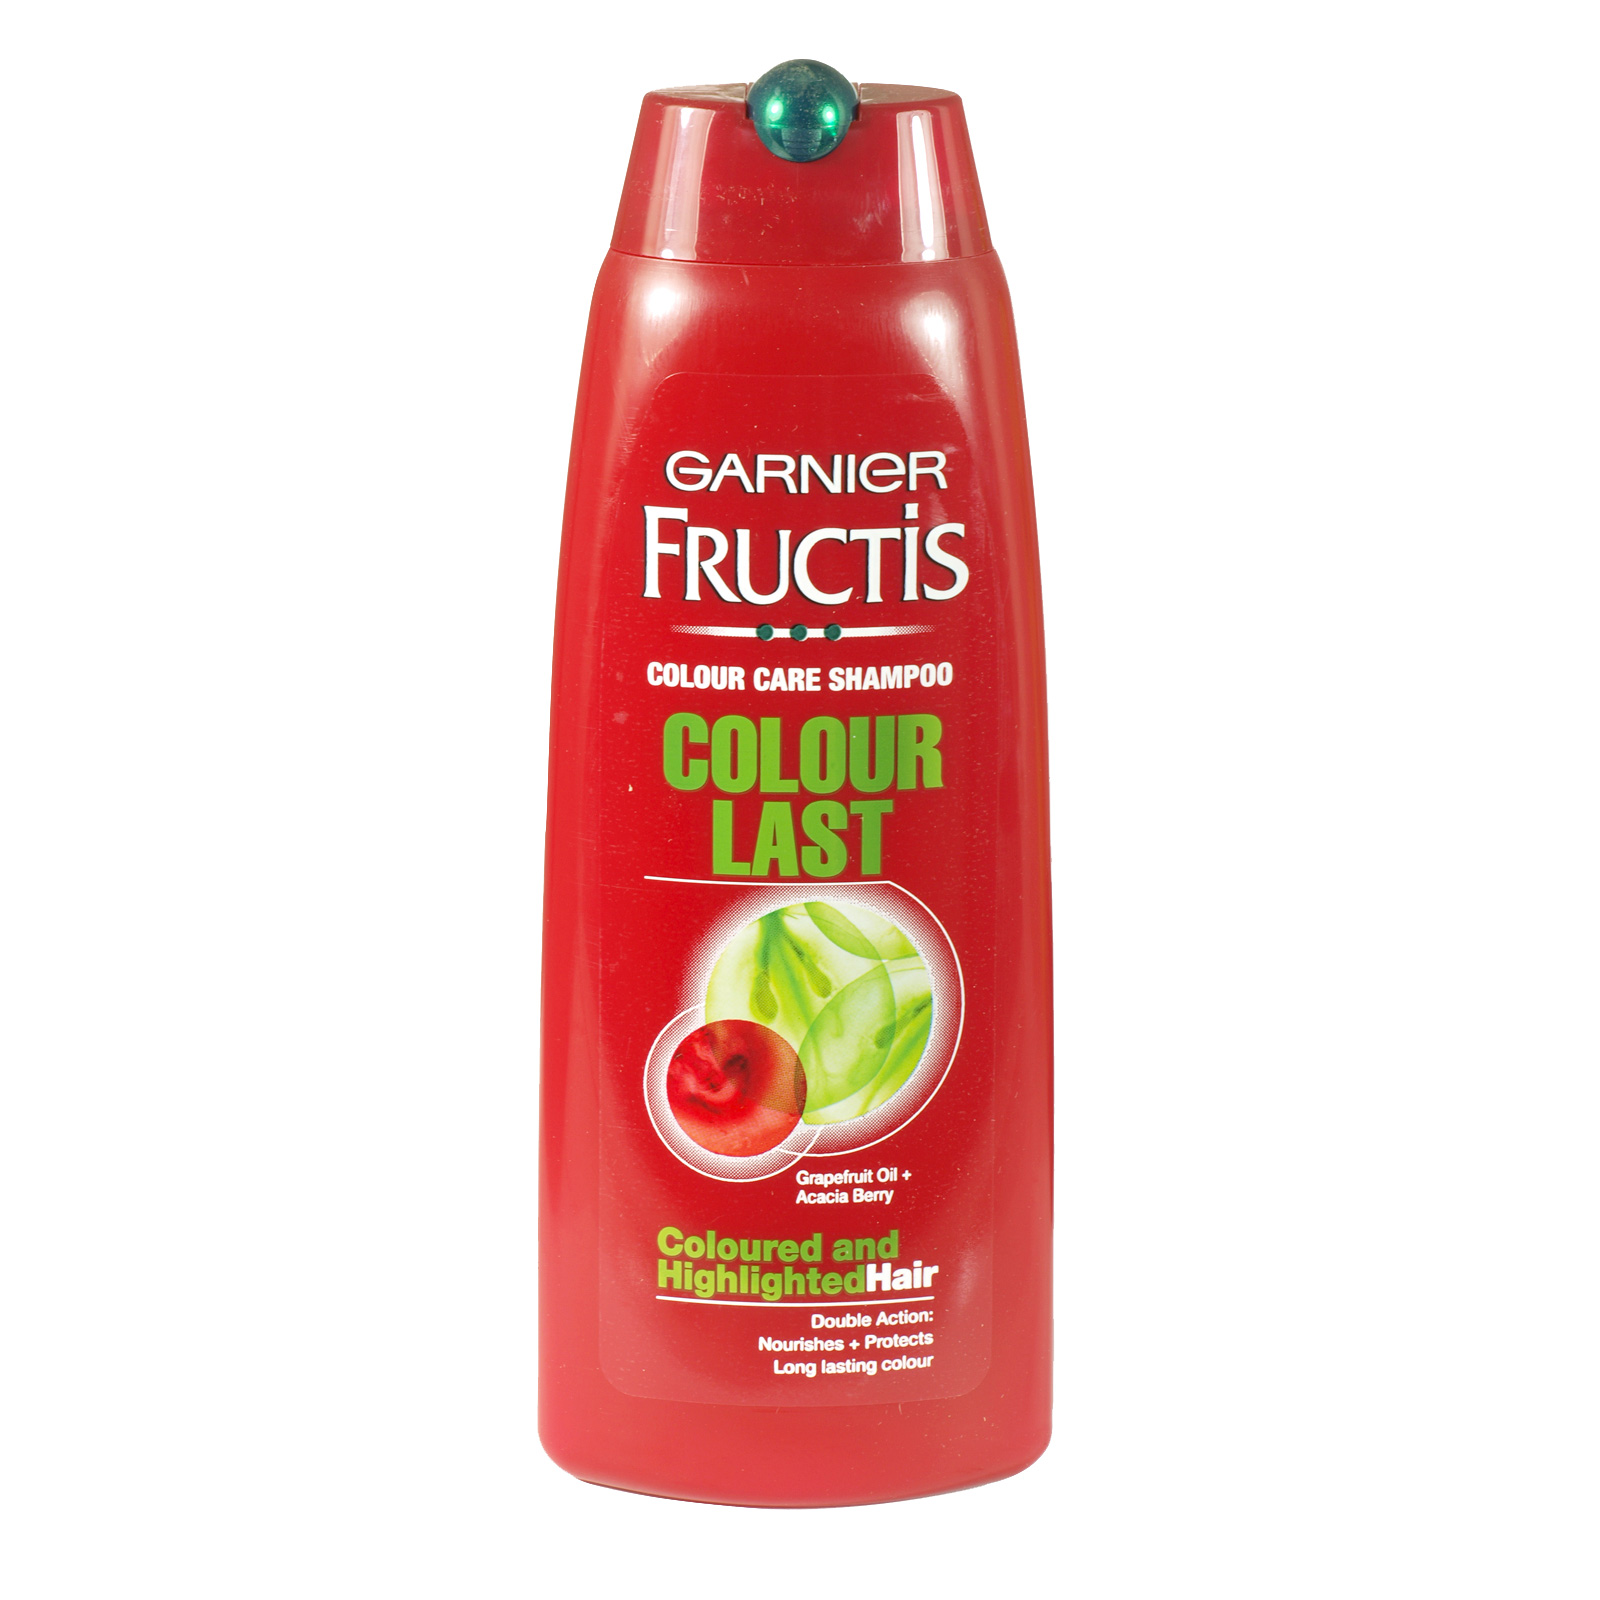 GARNIER FRUCTIS SHAMPOO 250ML COLOUR LAST X6